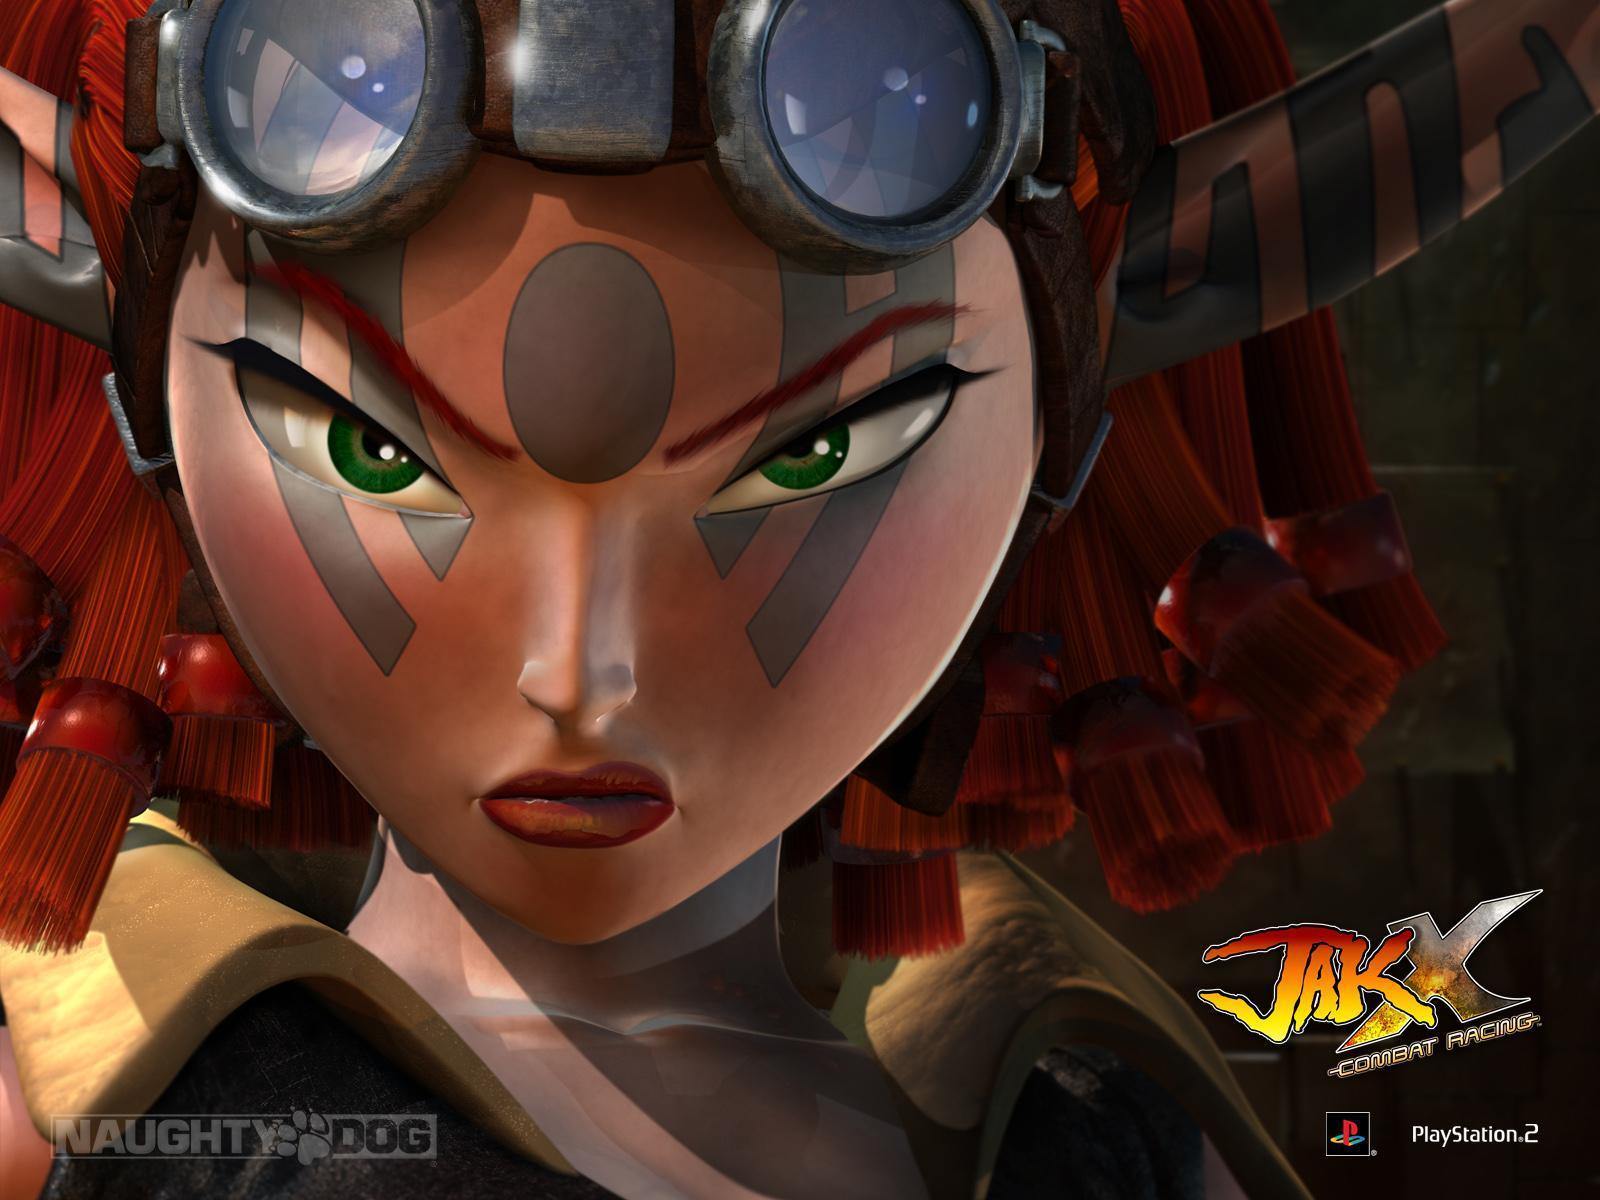 Jak And Daxter Images Jak X Wallpaper Hd Wallpaper And Background